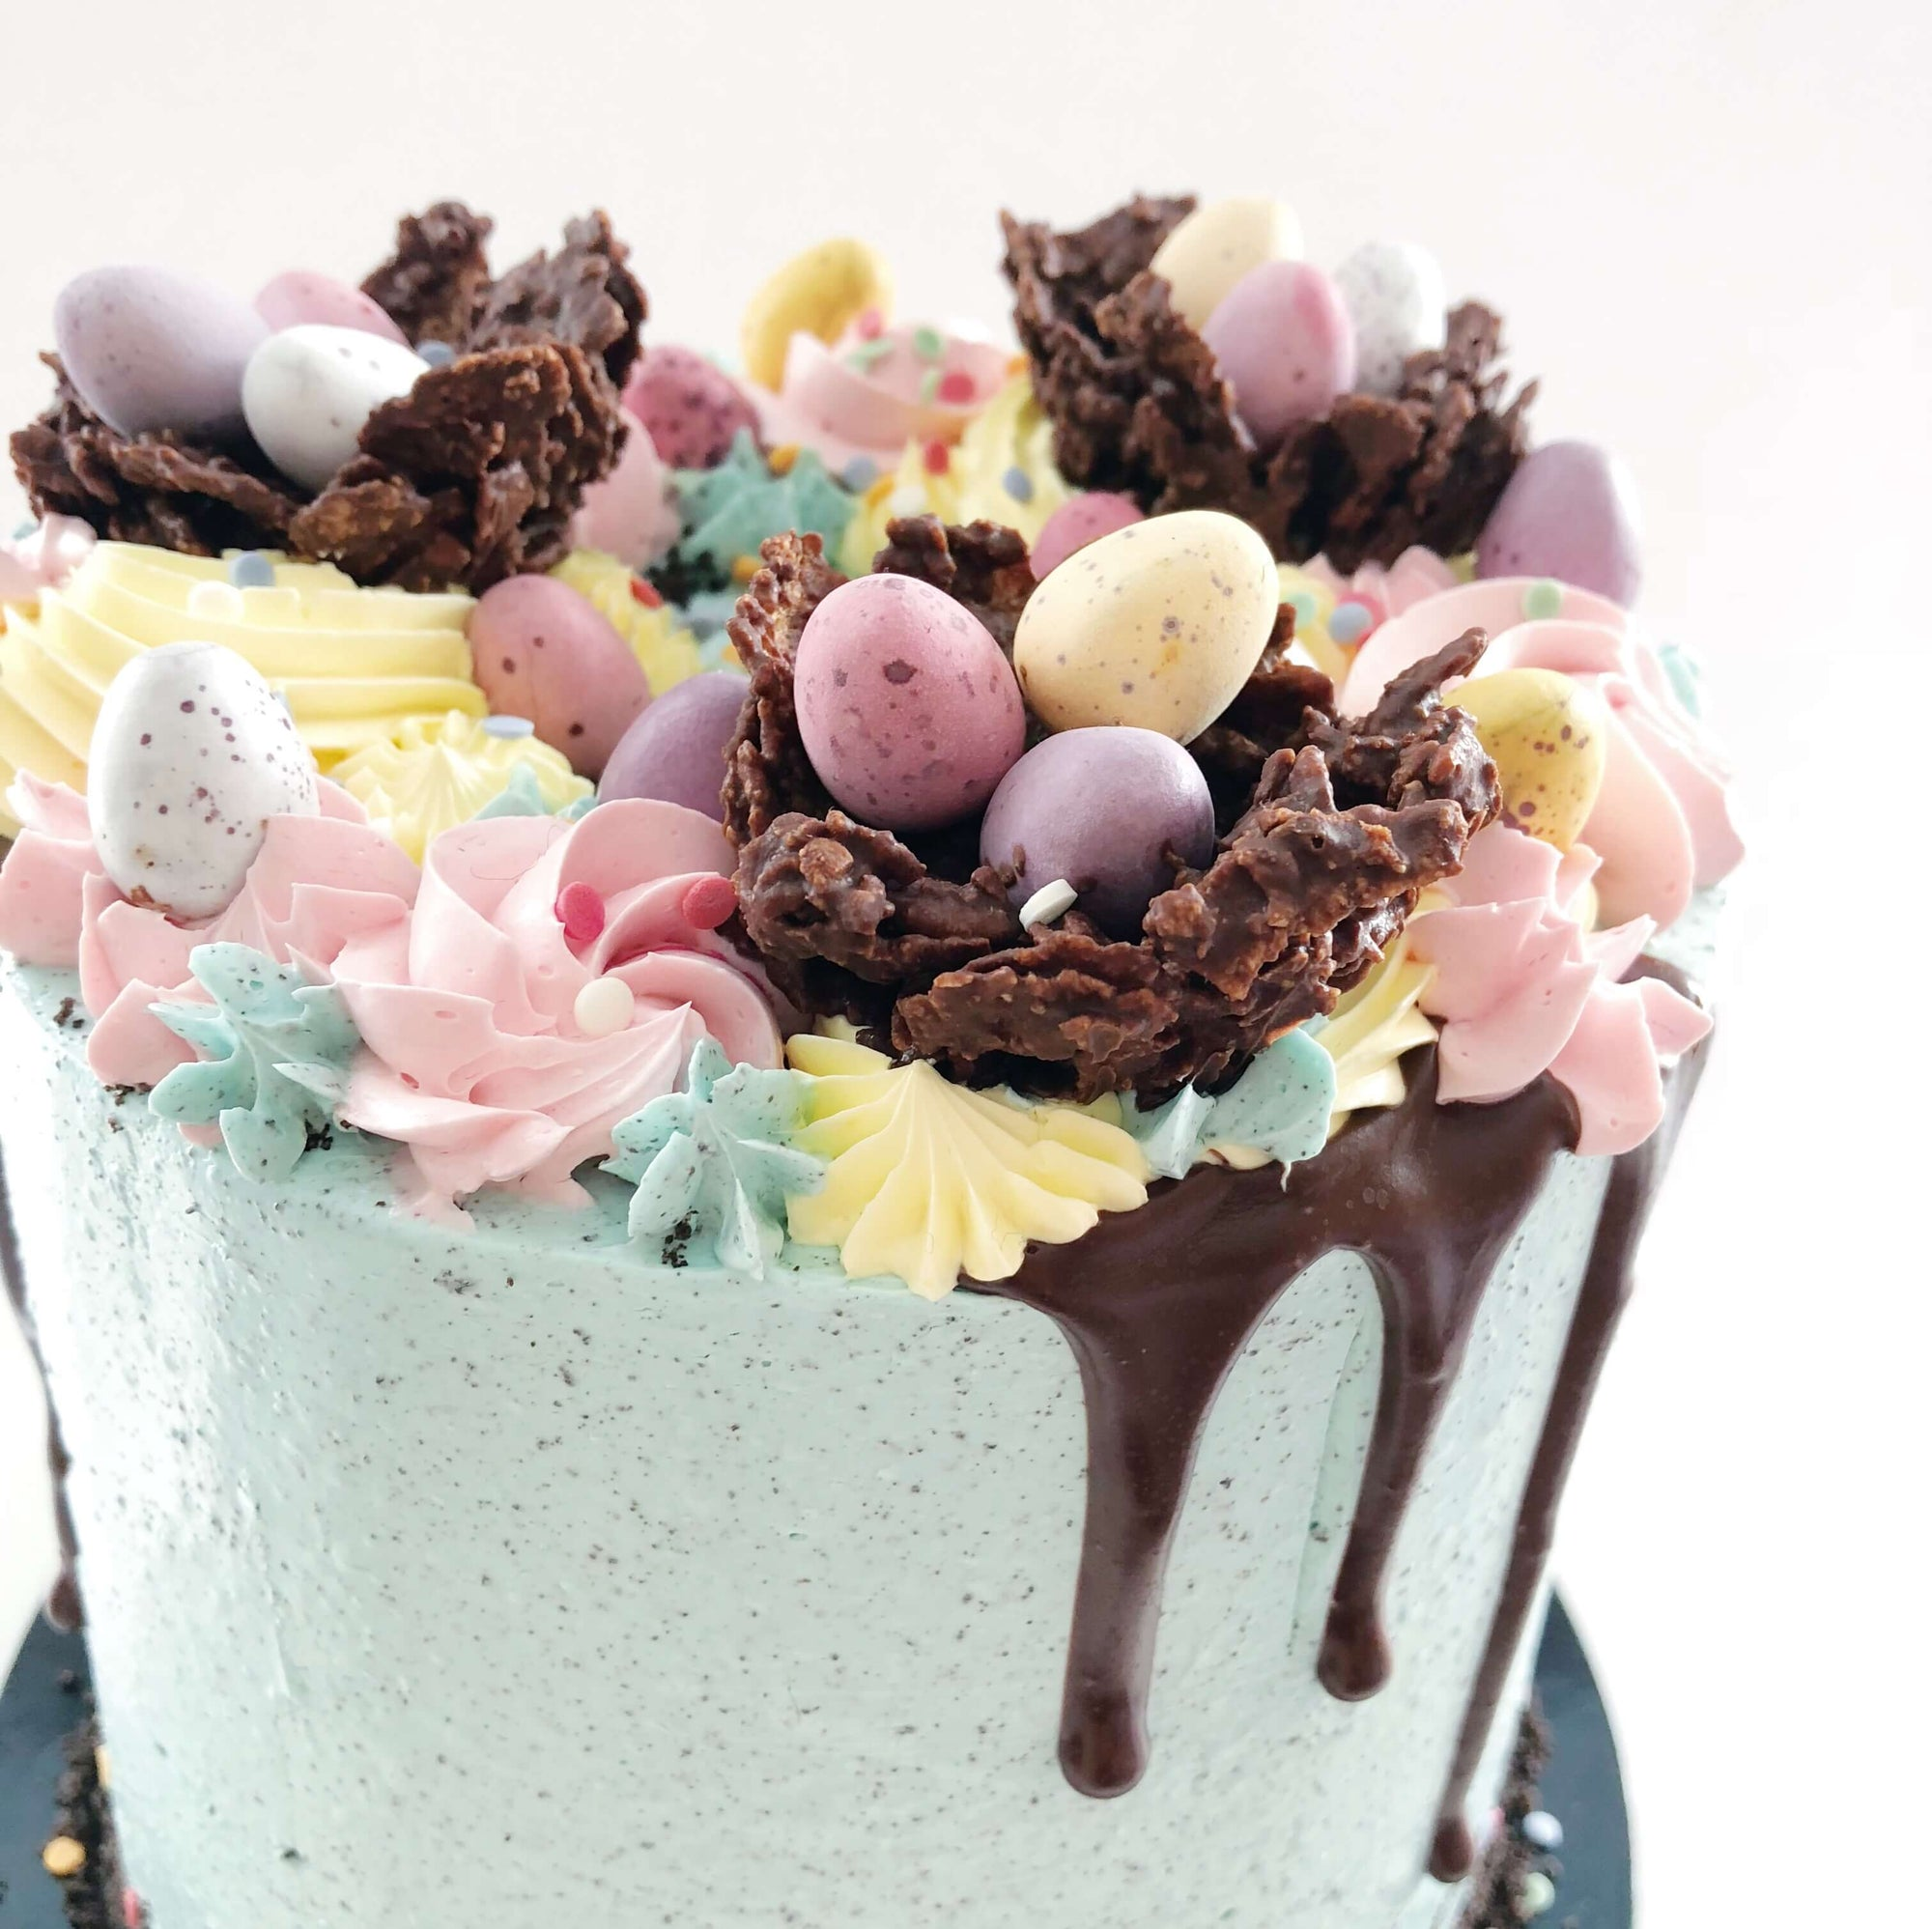 Introducing the Easter Egg Nest Cake